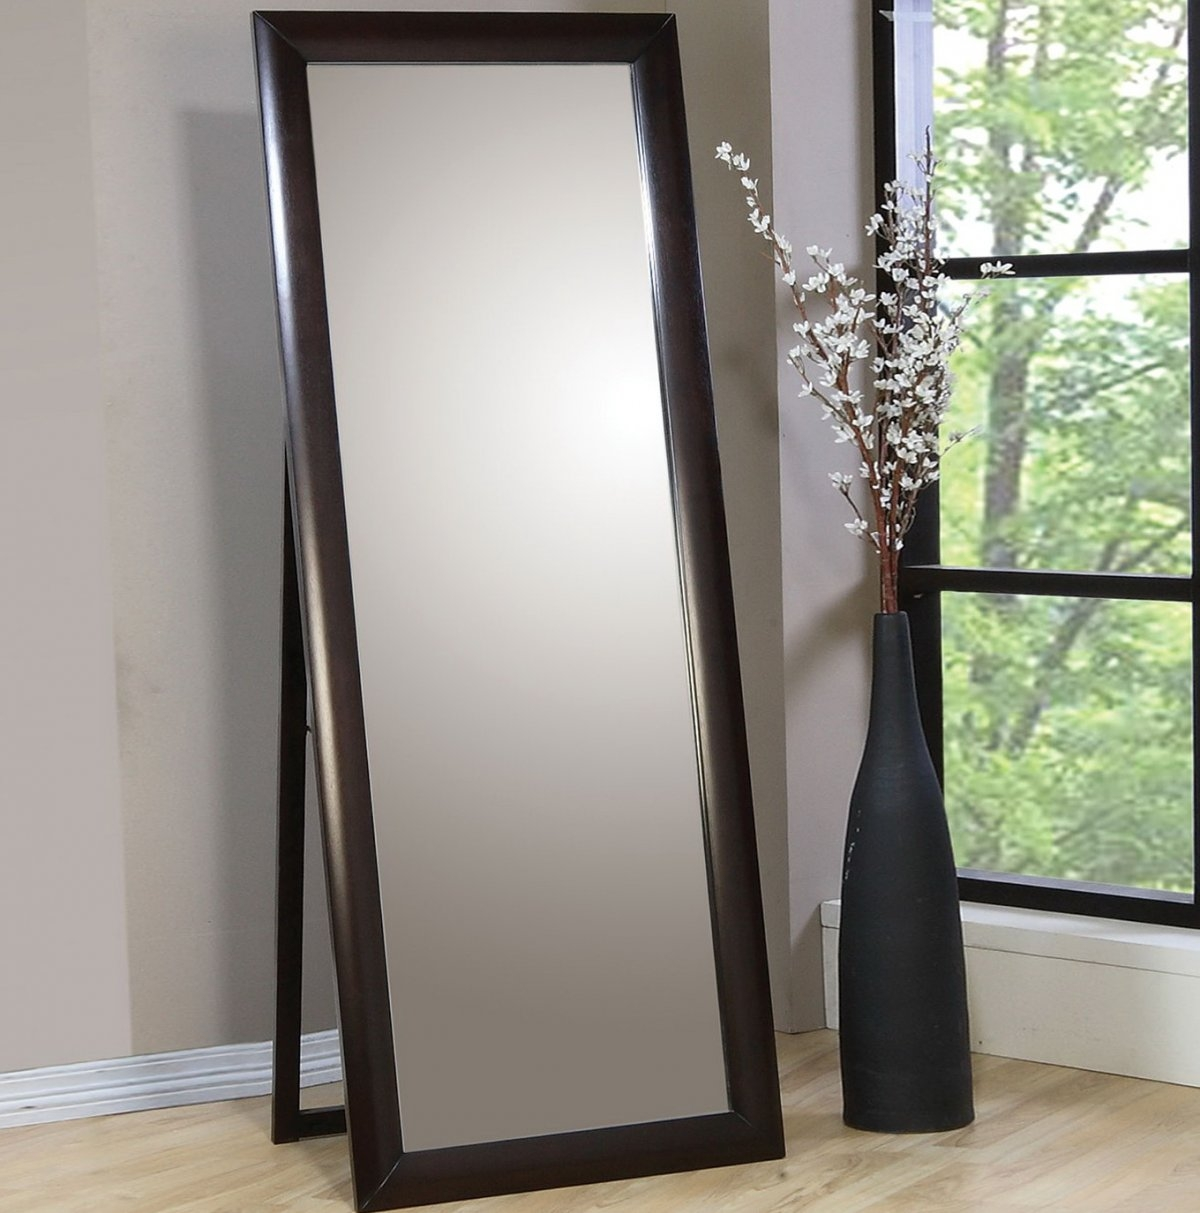 Floor To Ceiling Mirrors For Sale Winda 7 Furniture Within Floor To Ceiling Mirrors For Sale (Image 12 of 15)